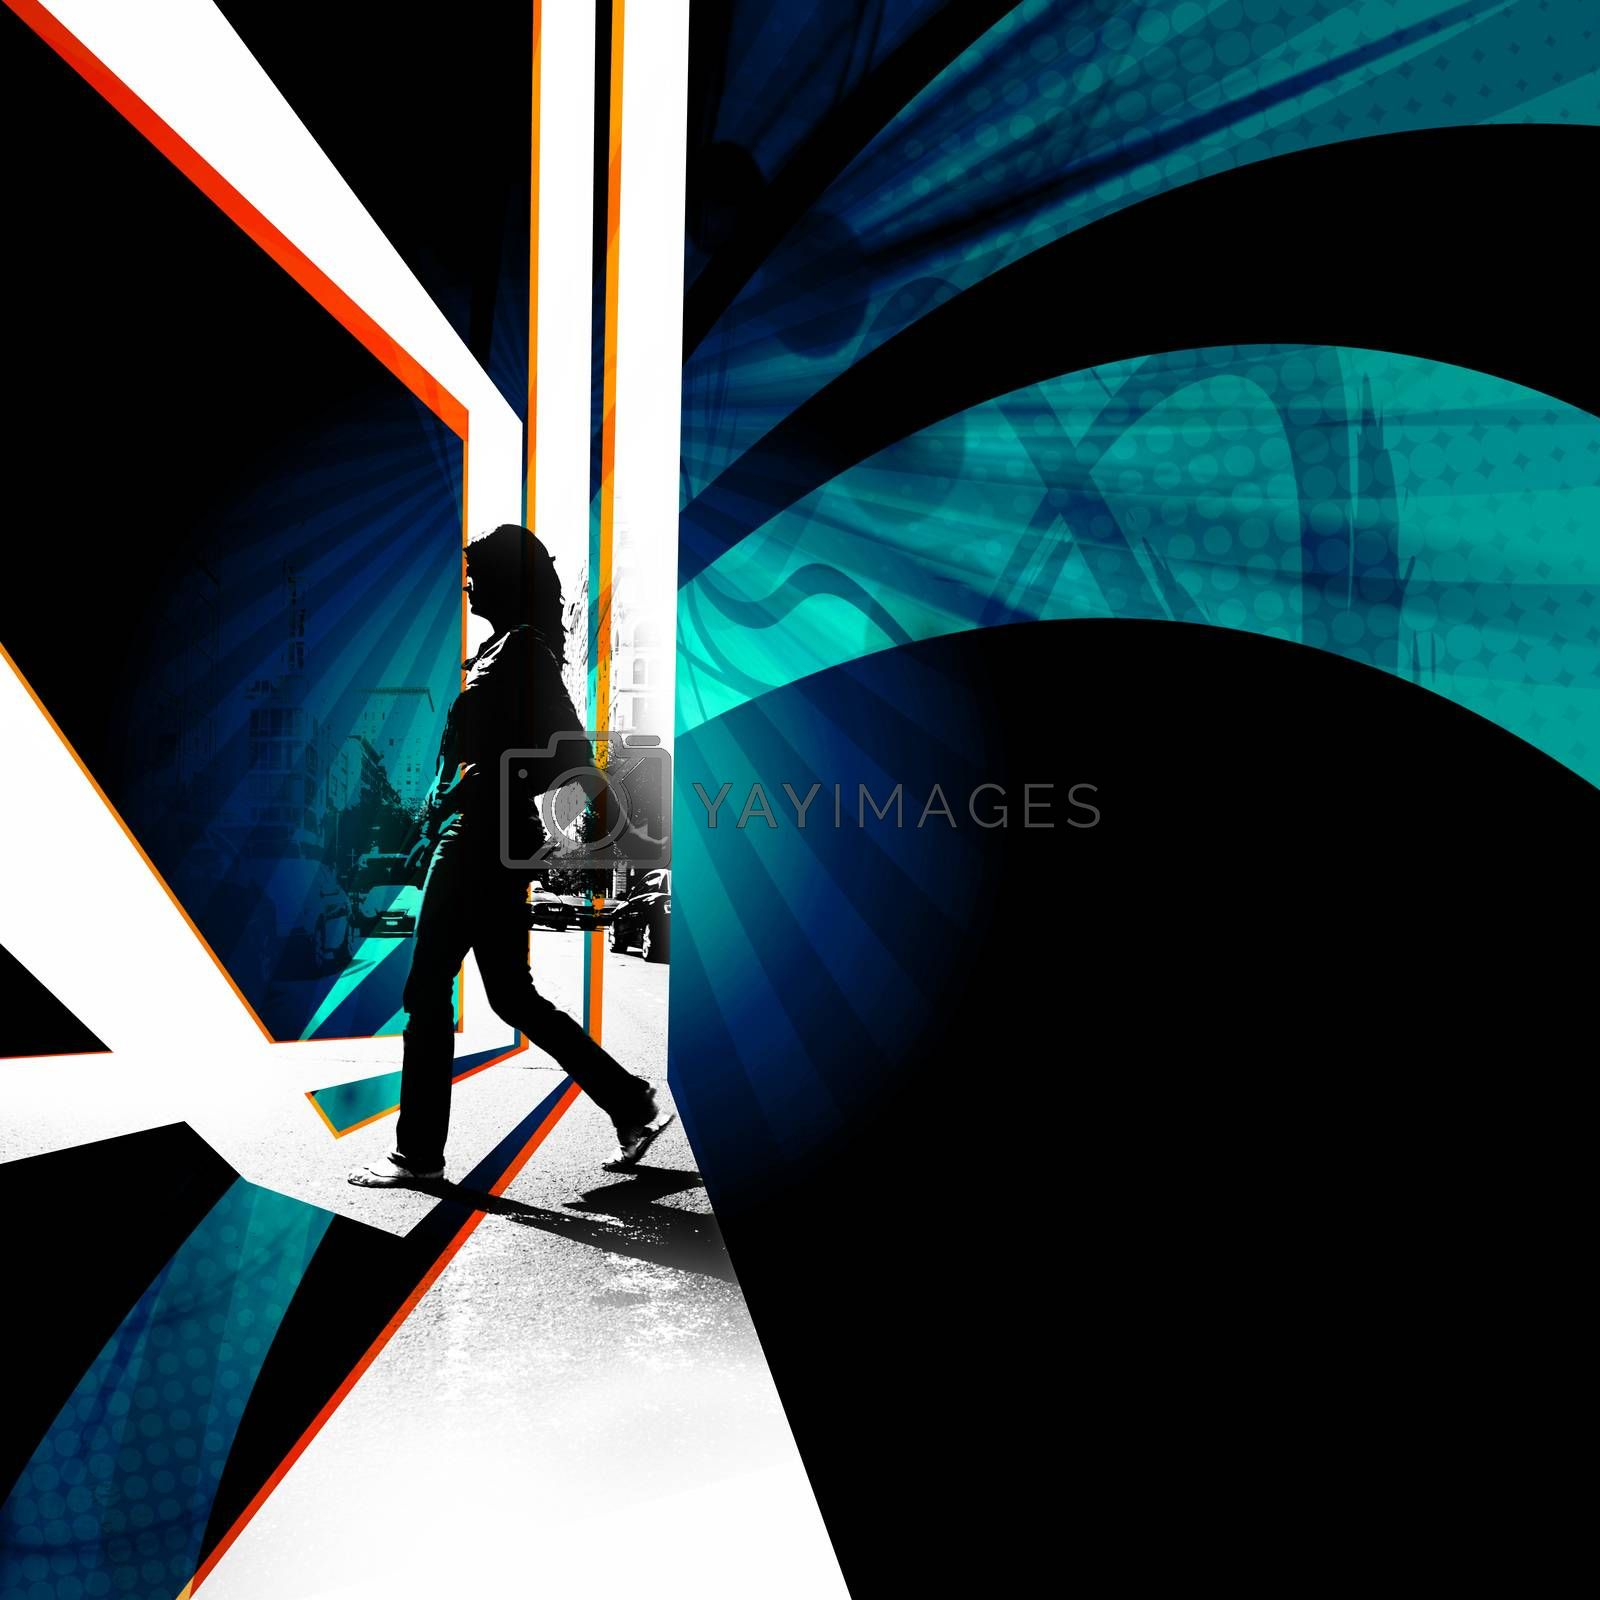 Silhouette of a female pedestrian walking across the street in the city.  Abstract montage with plenty of negative space for your layout.